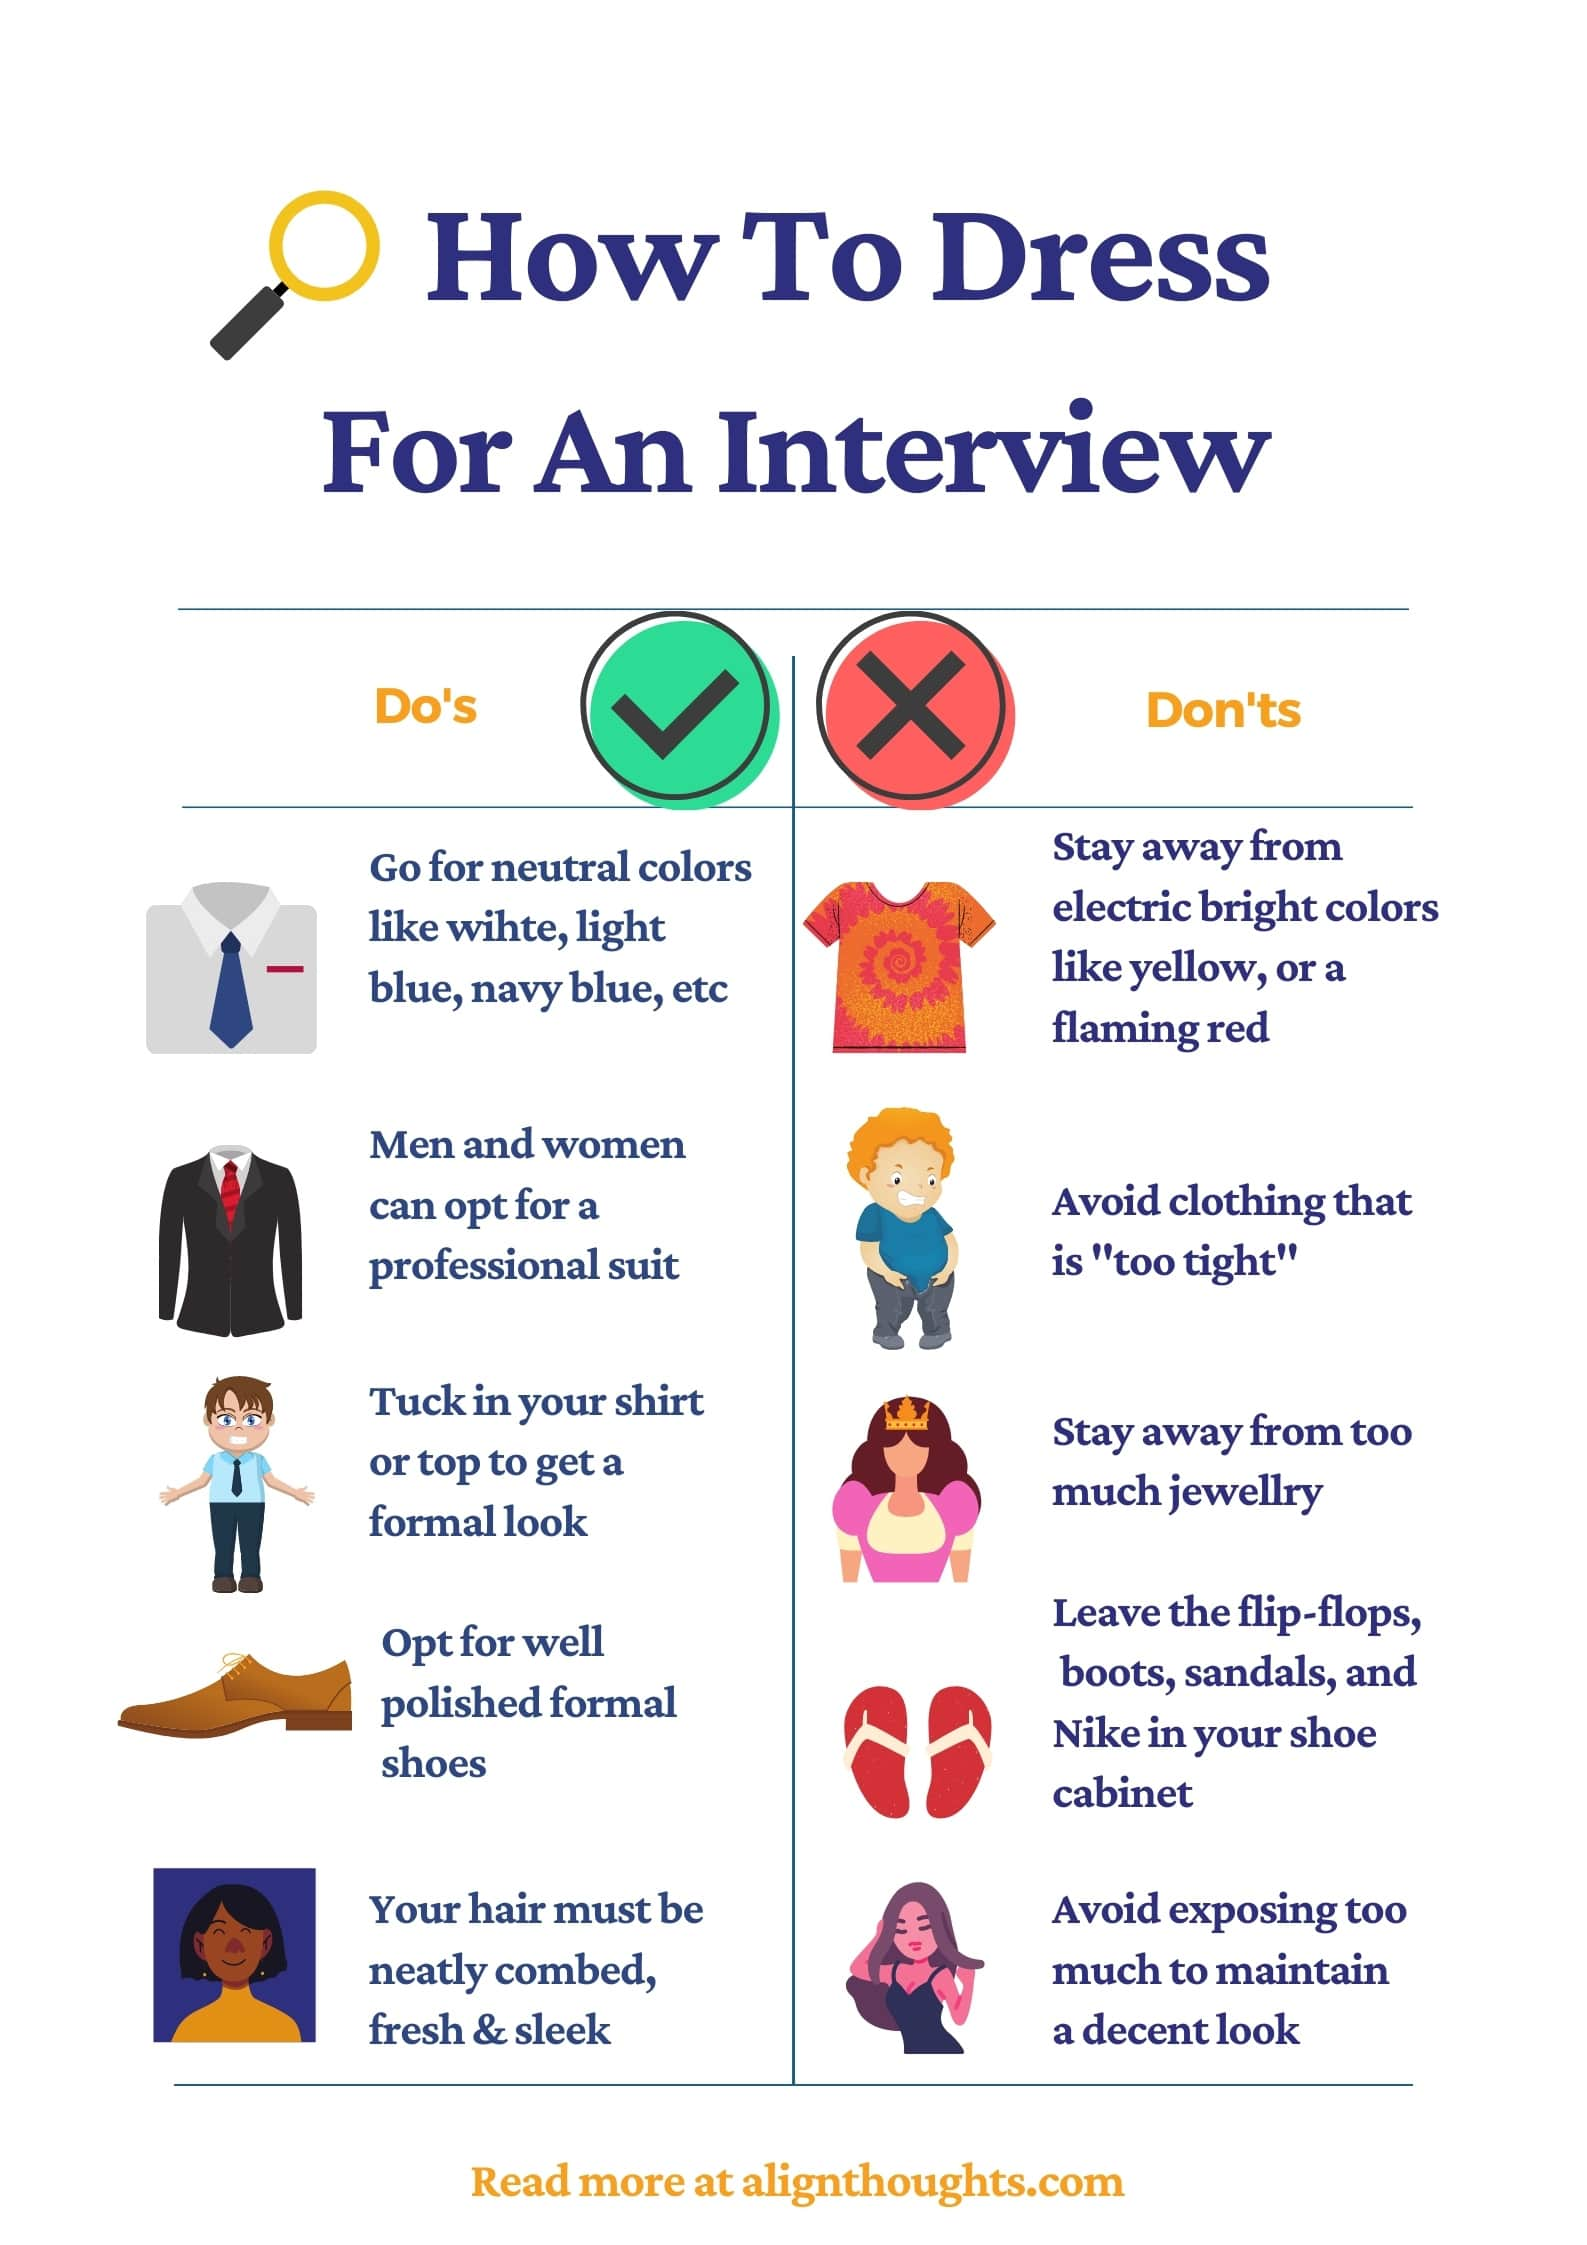 how to dress for an interview-alignthoughts